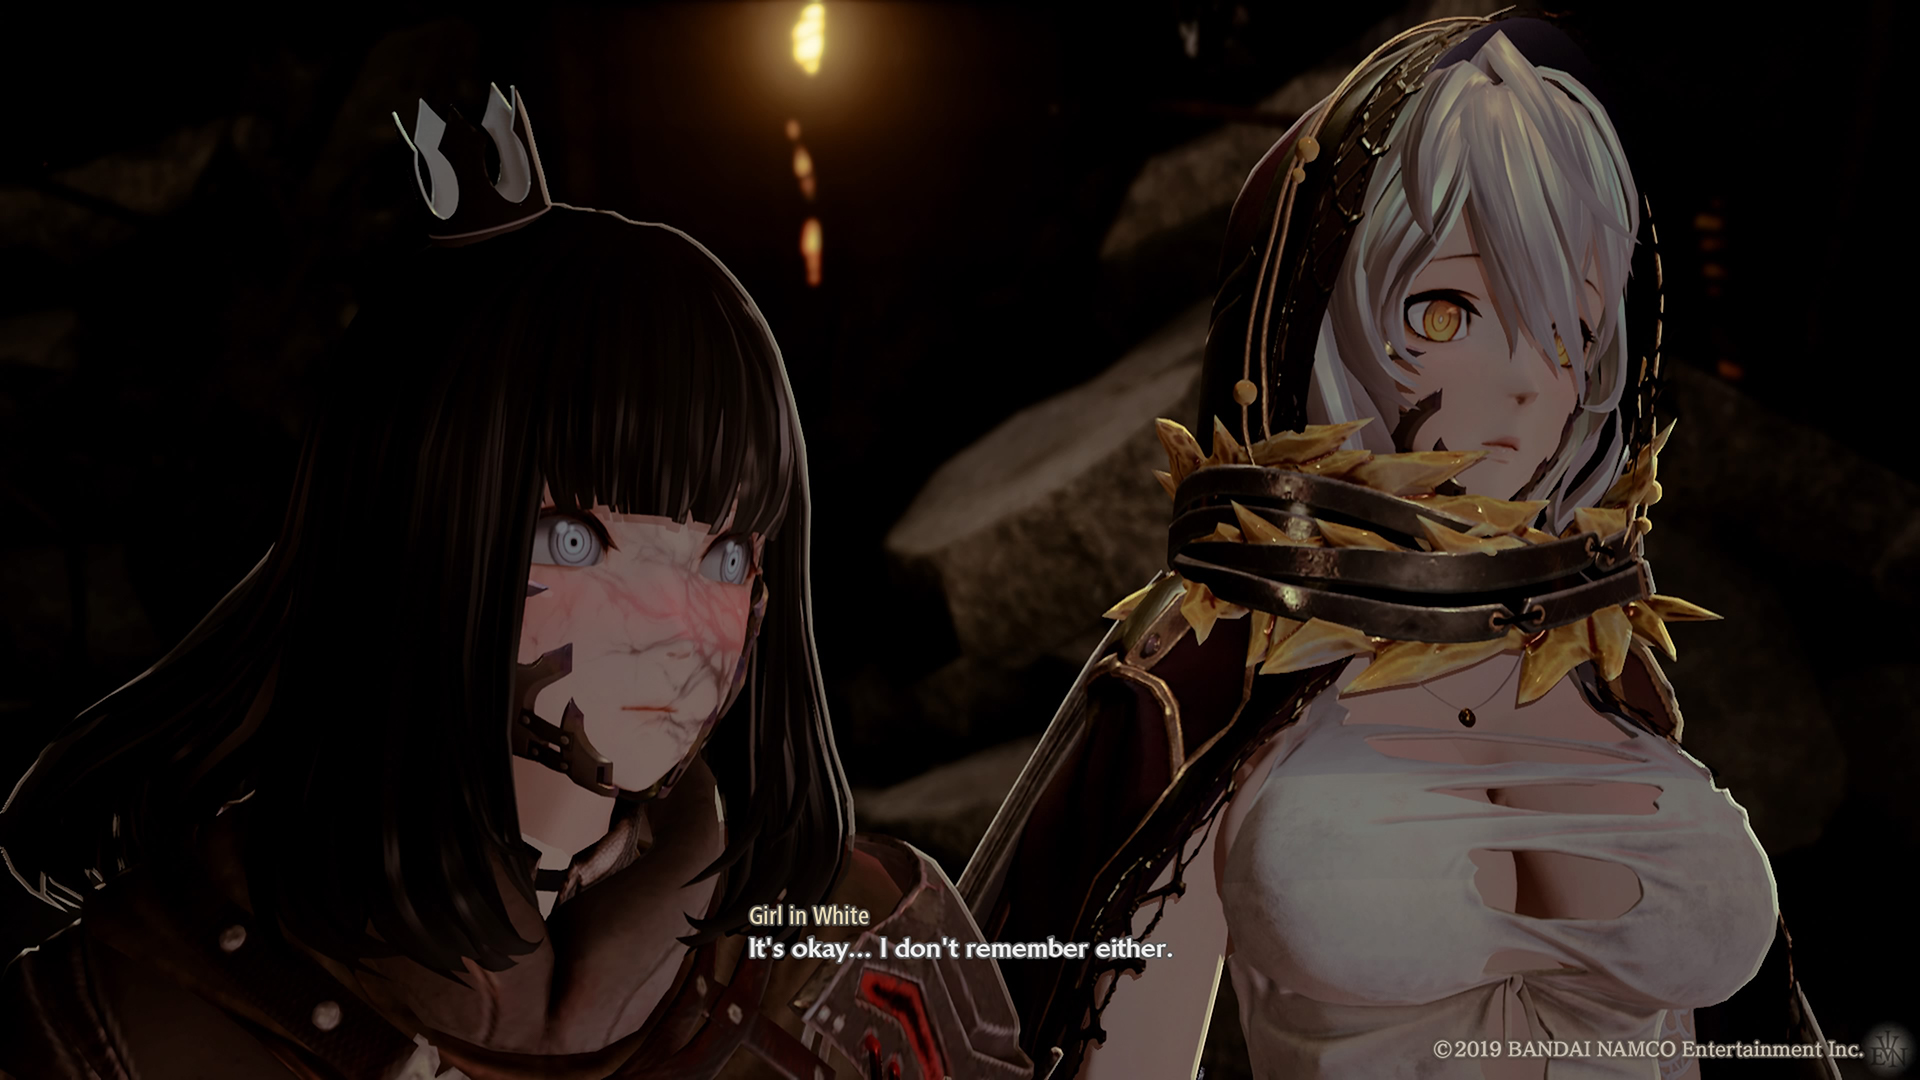 Preview: Code Vein may not wow, but there's plenty going for it to